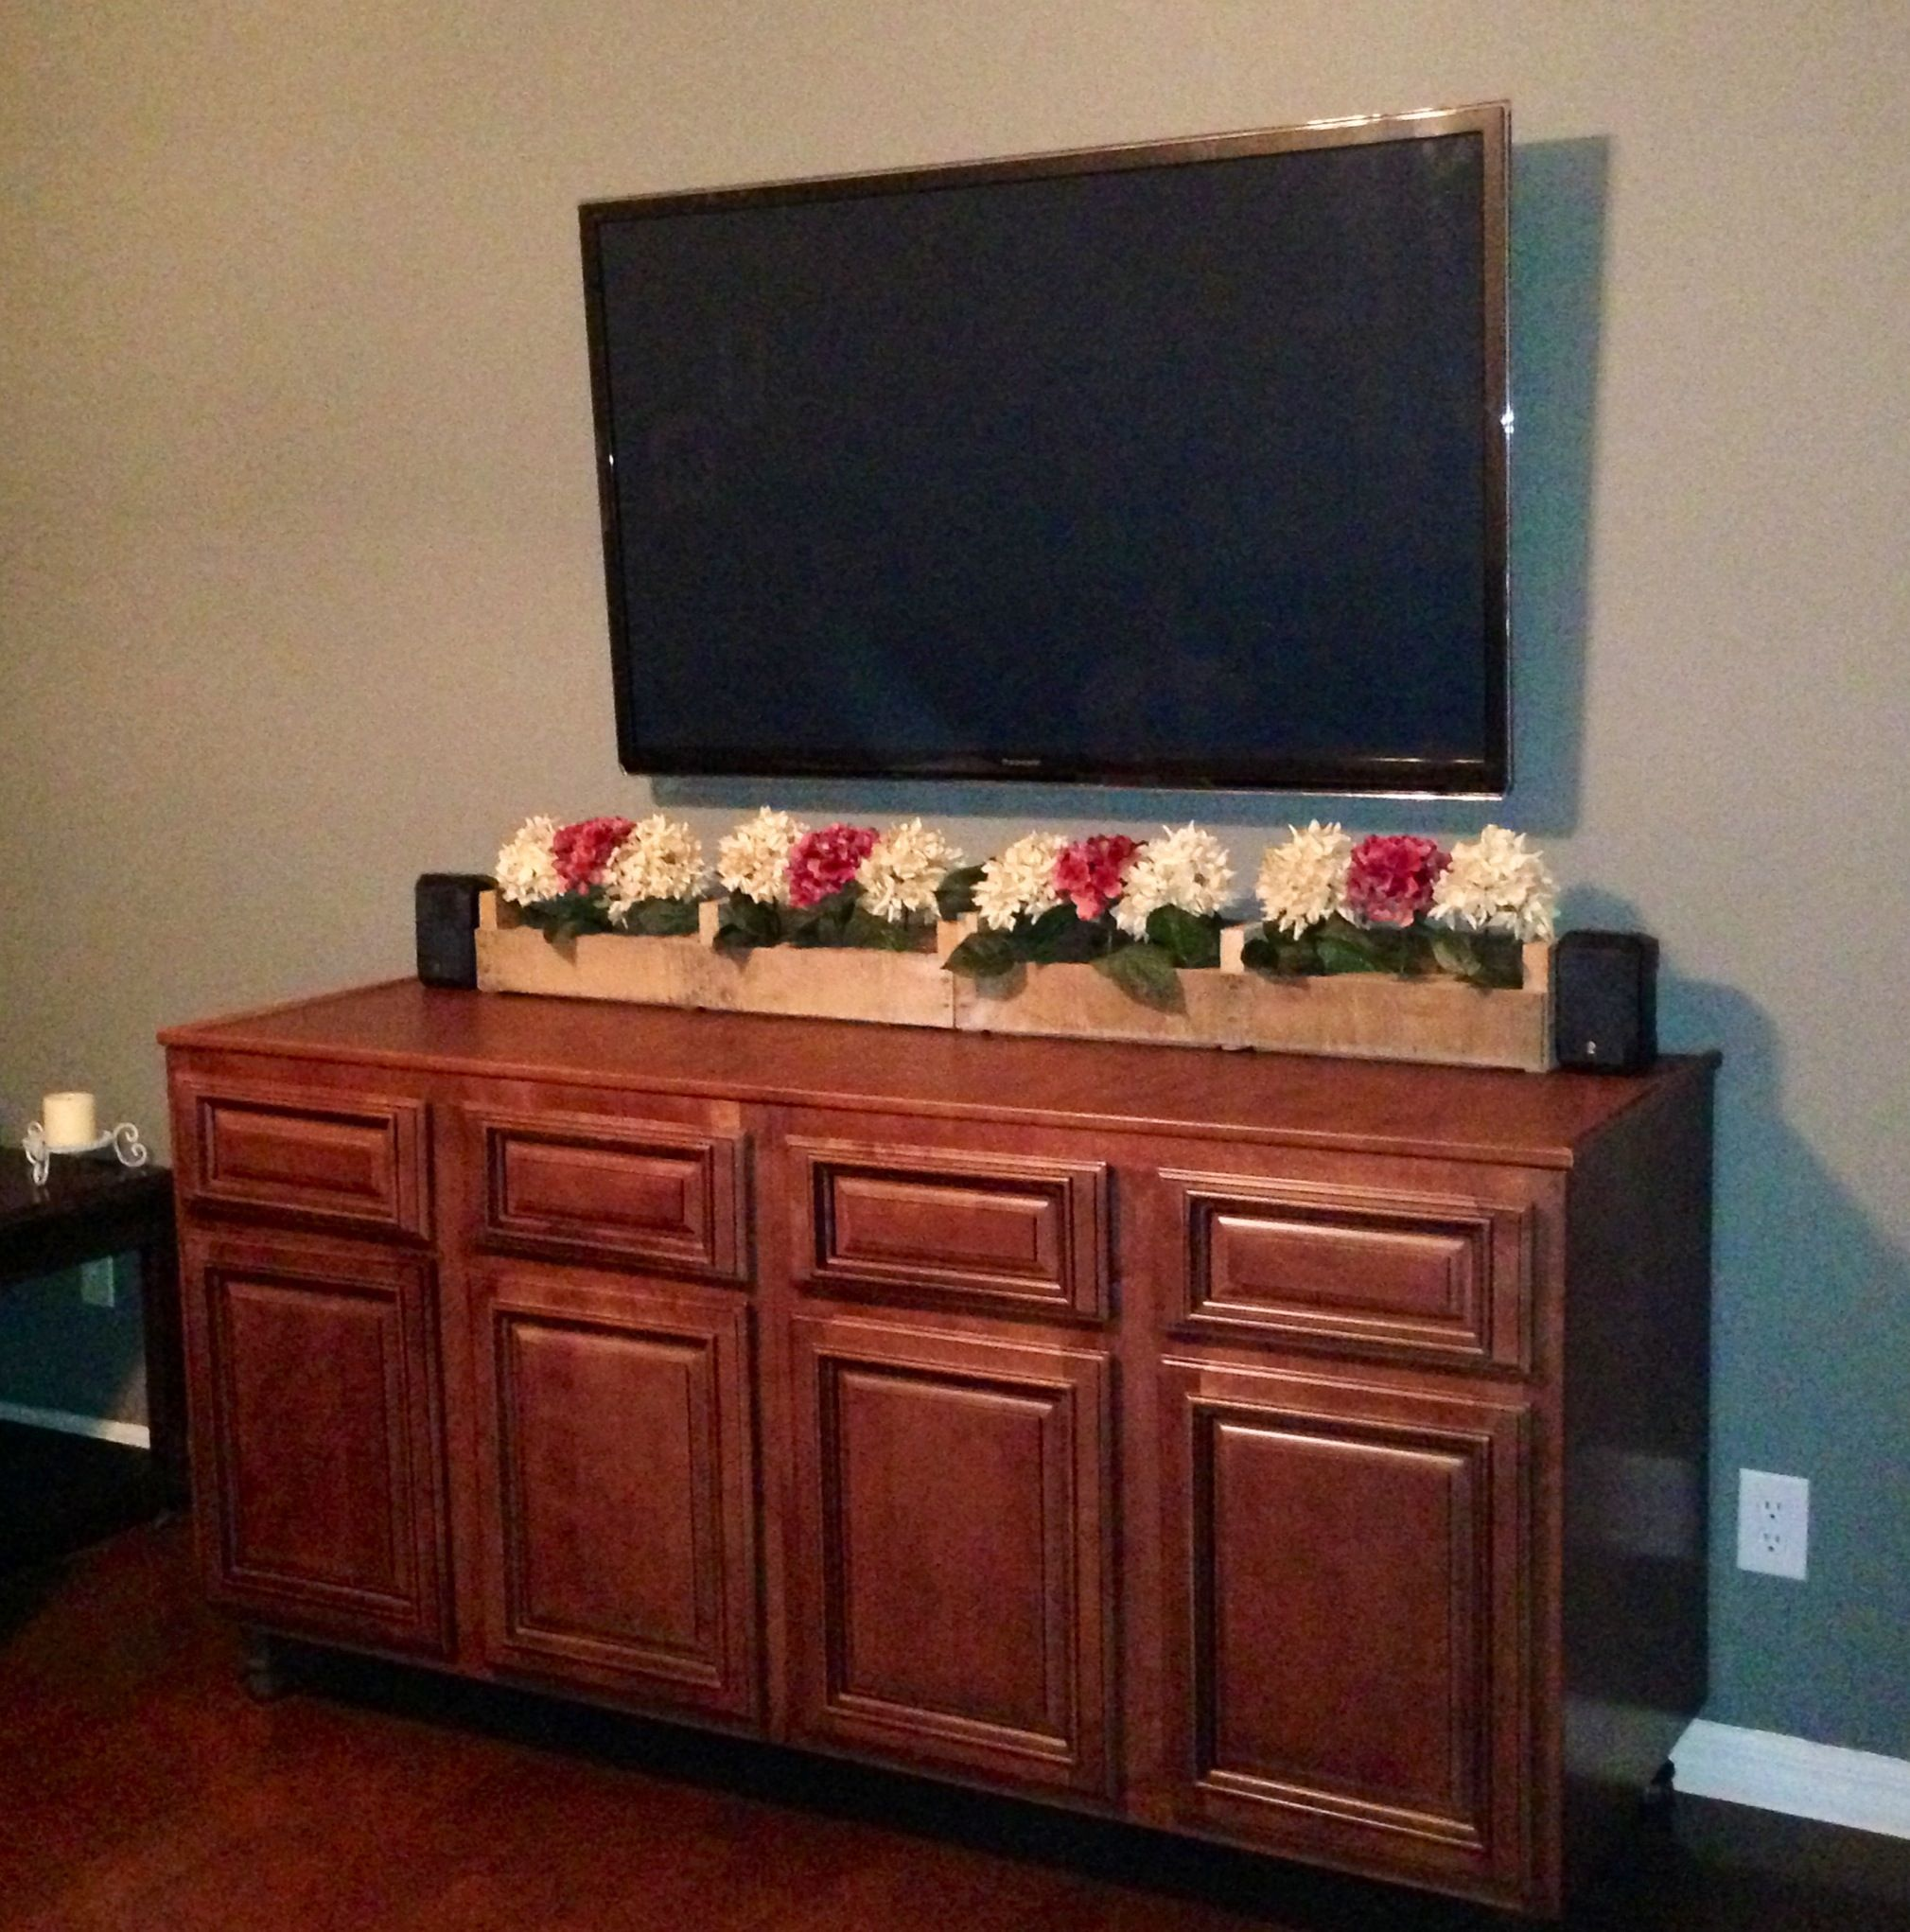 Diy entertainment center home pinterest Home entertainment center